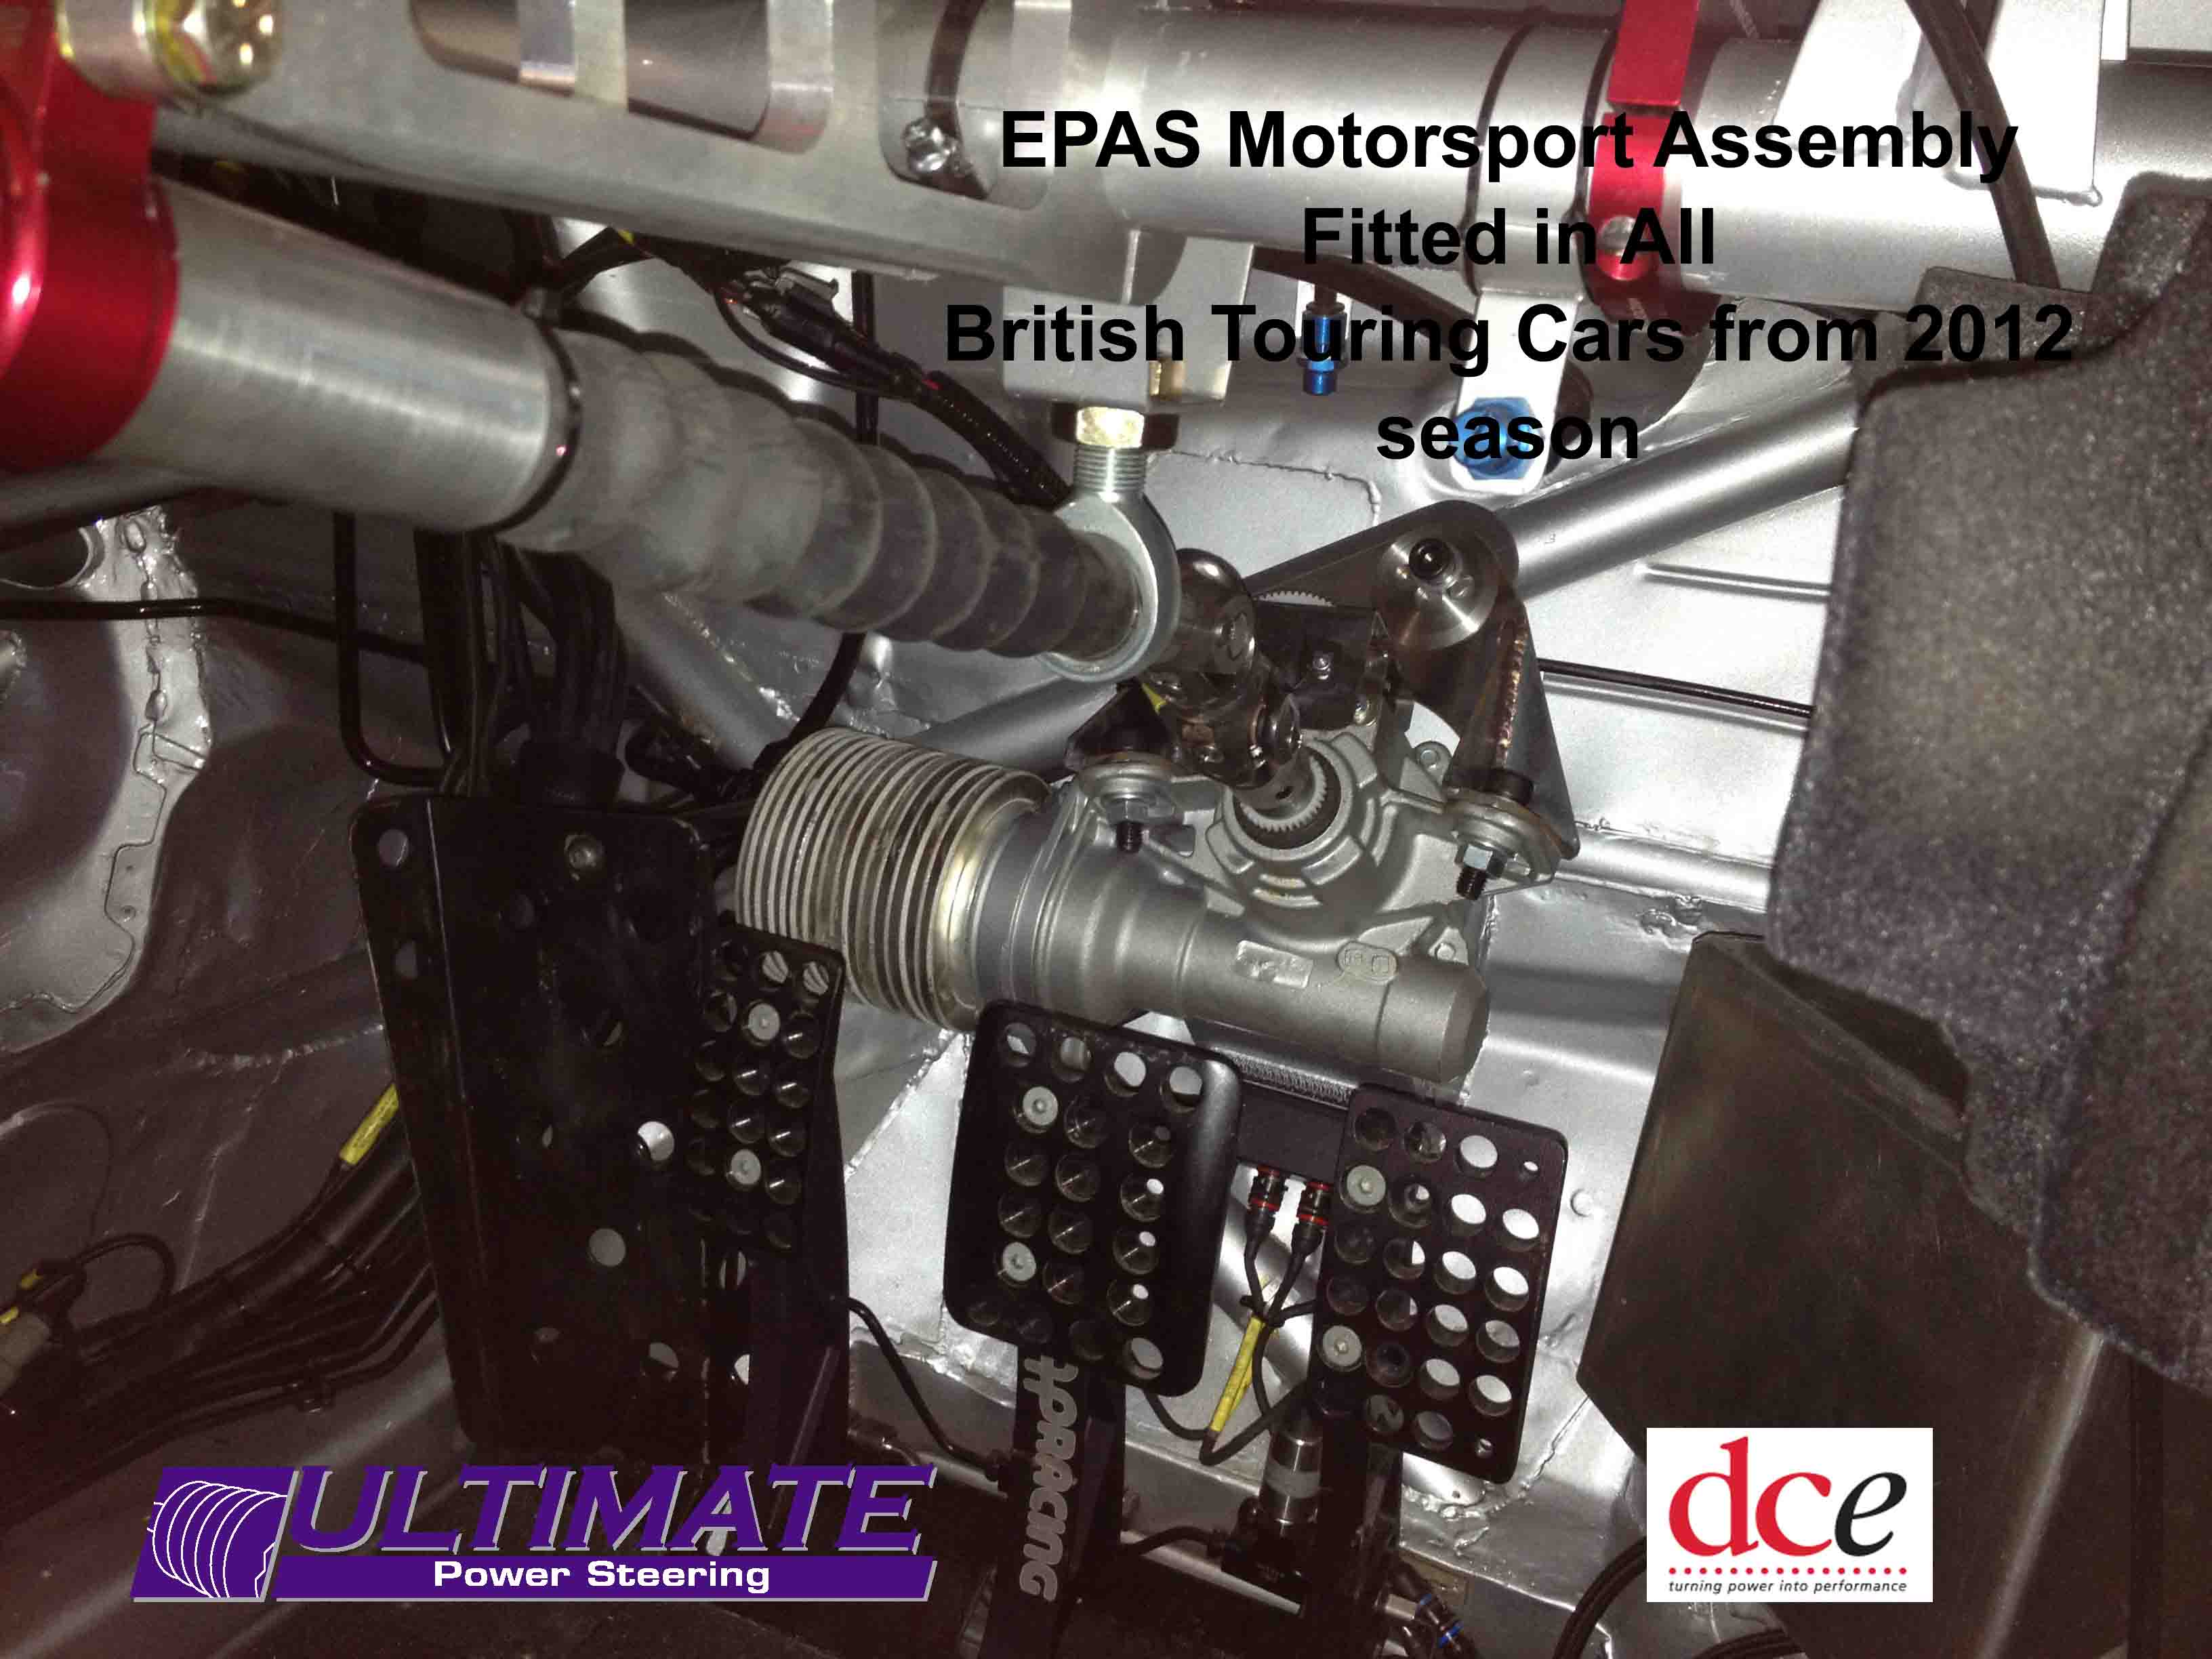 motorsport-assembly-in-british-touring-car-photo-no1-for-website.jpg